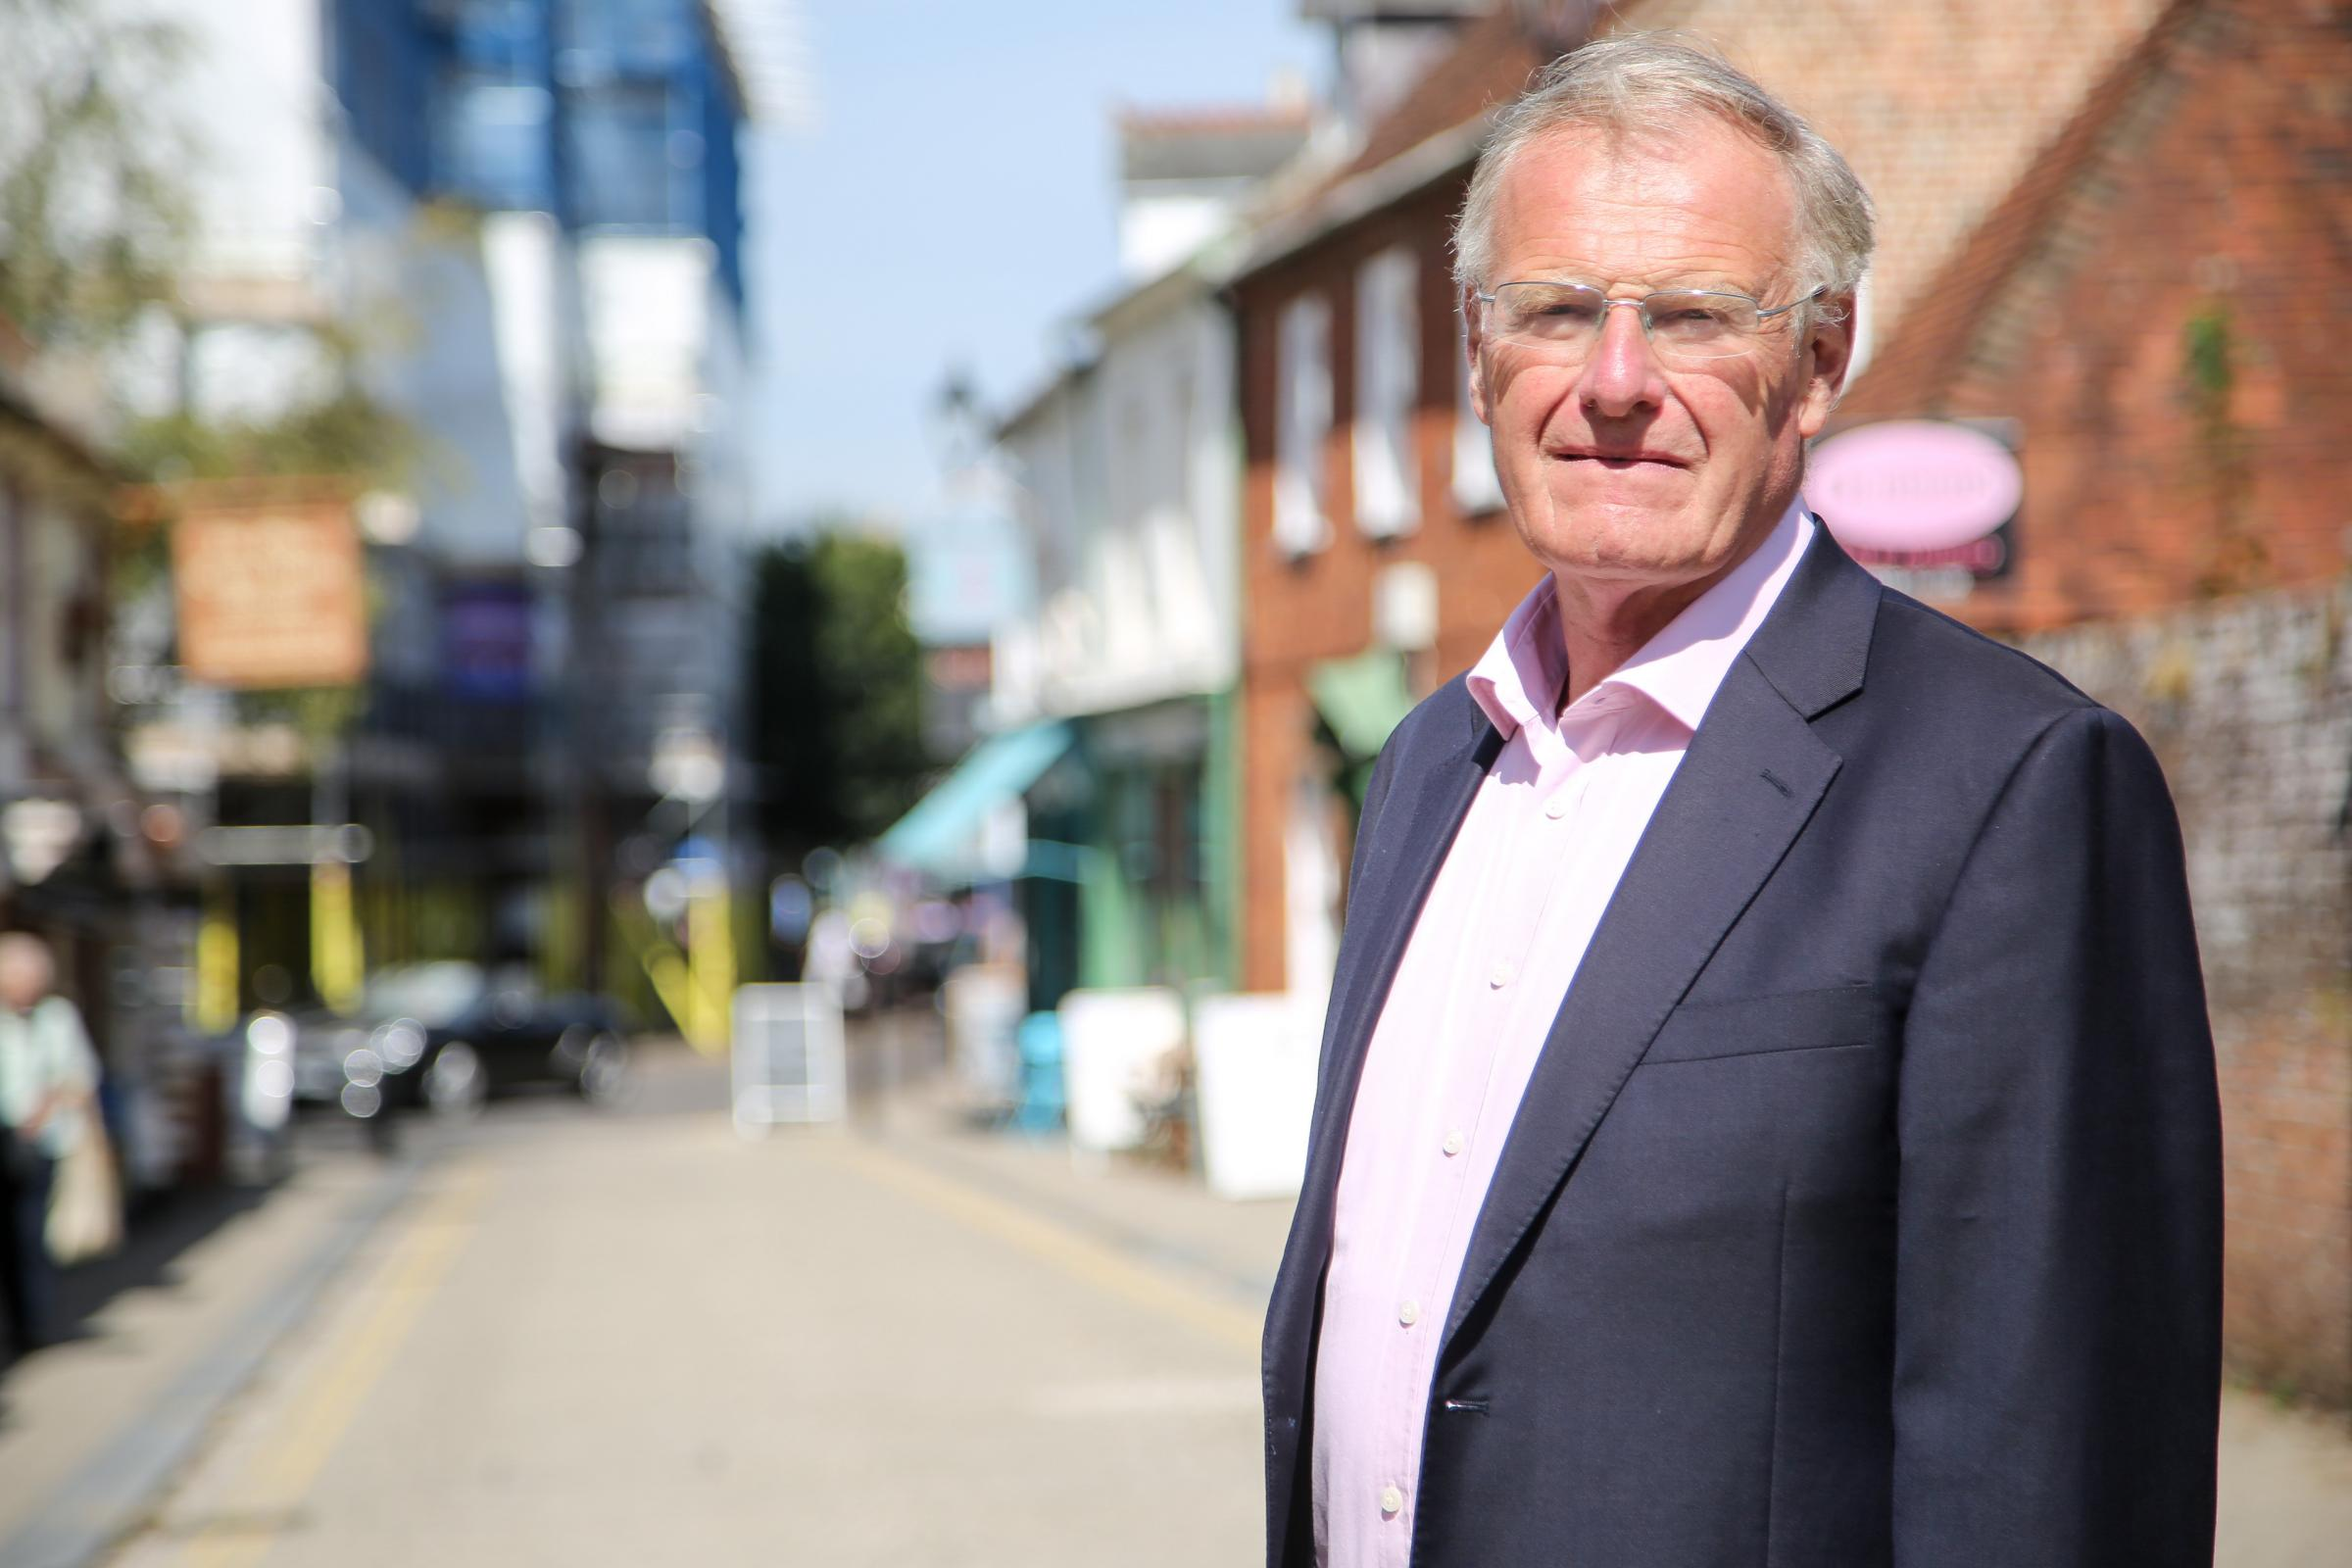 Christchurch MP Christopher Chope